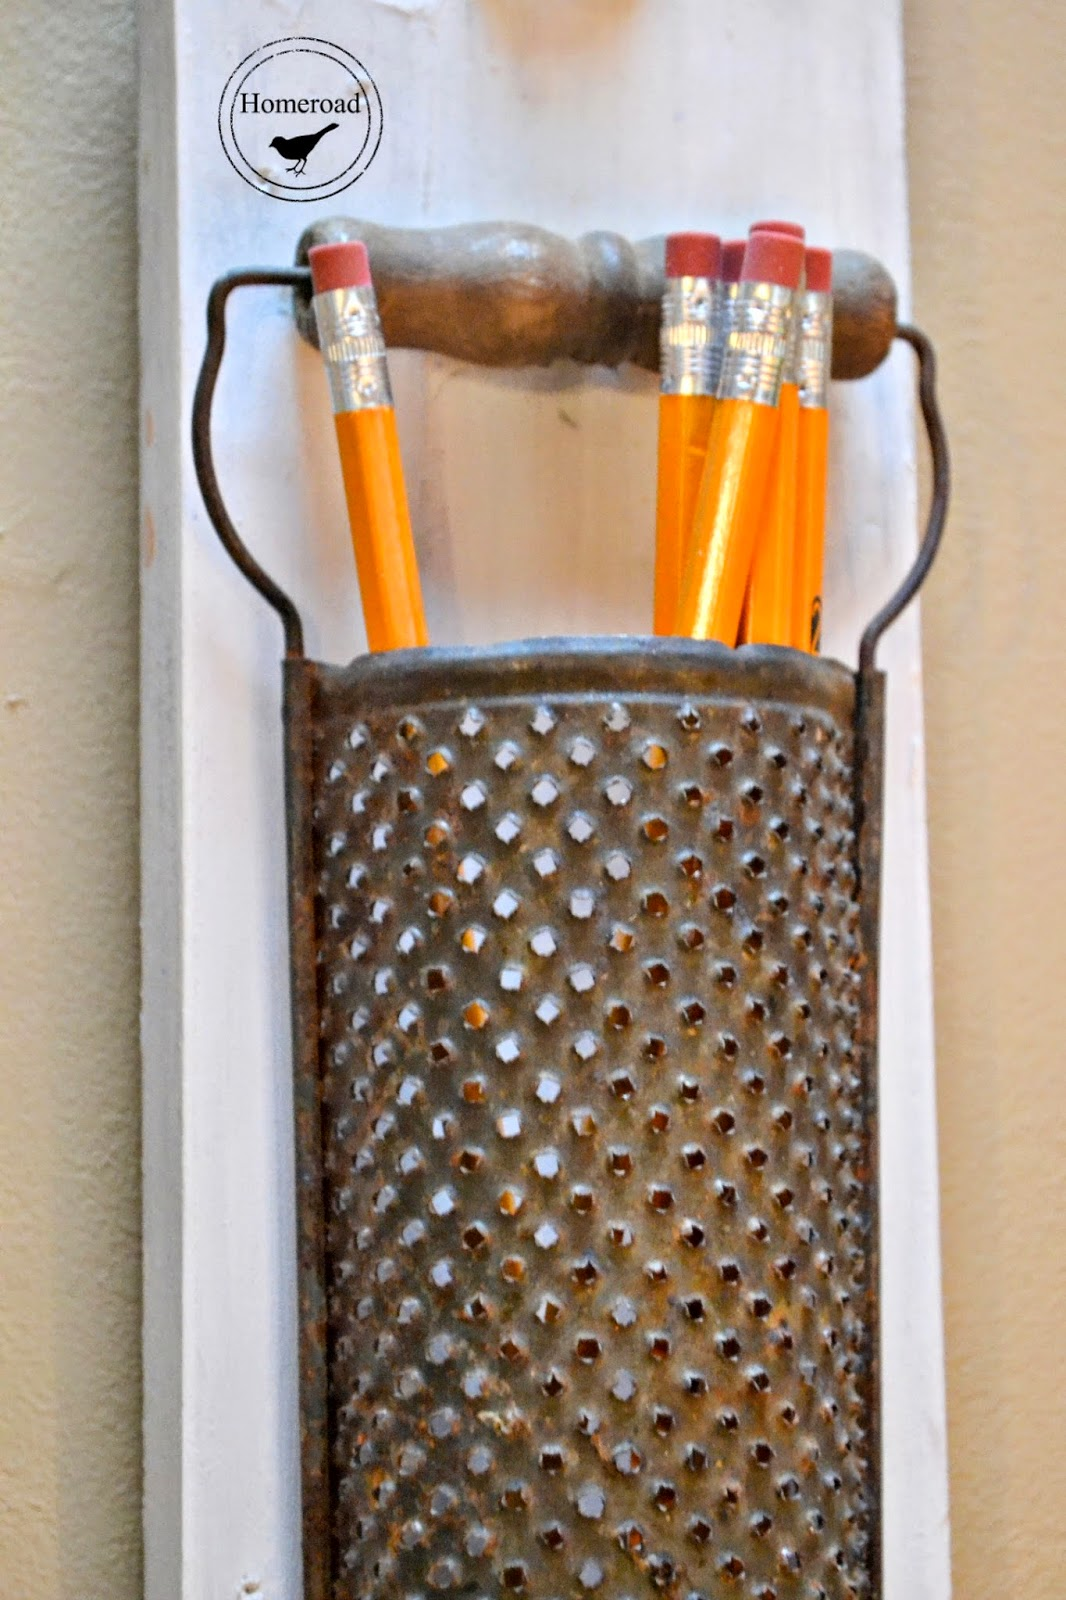 Vintage grater pencil cup www.homeroad.net